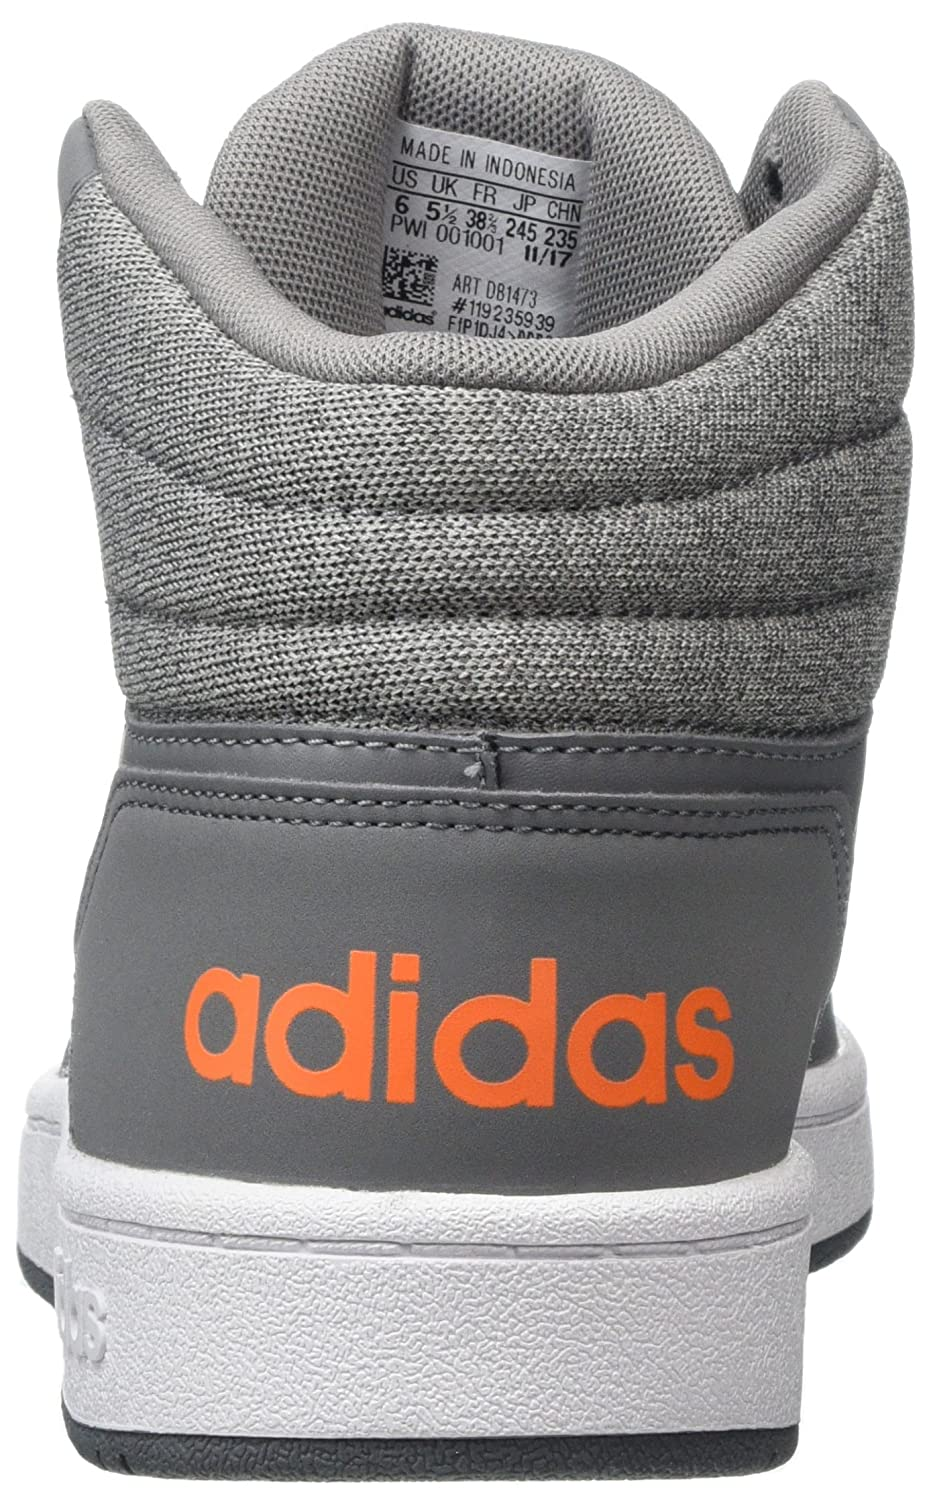 detailed look 62380 a5a67 Adidas Hoops Mid 2.0 K, Chaussures de Fitness Mixte Enfant, Gris (GritreFtwblaNaalre  000), 37 13 EU Amazon.fr Chaussures et Sacs